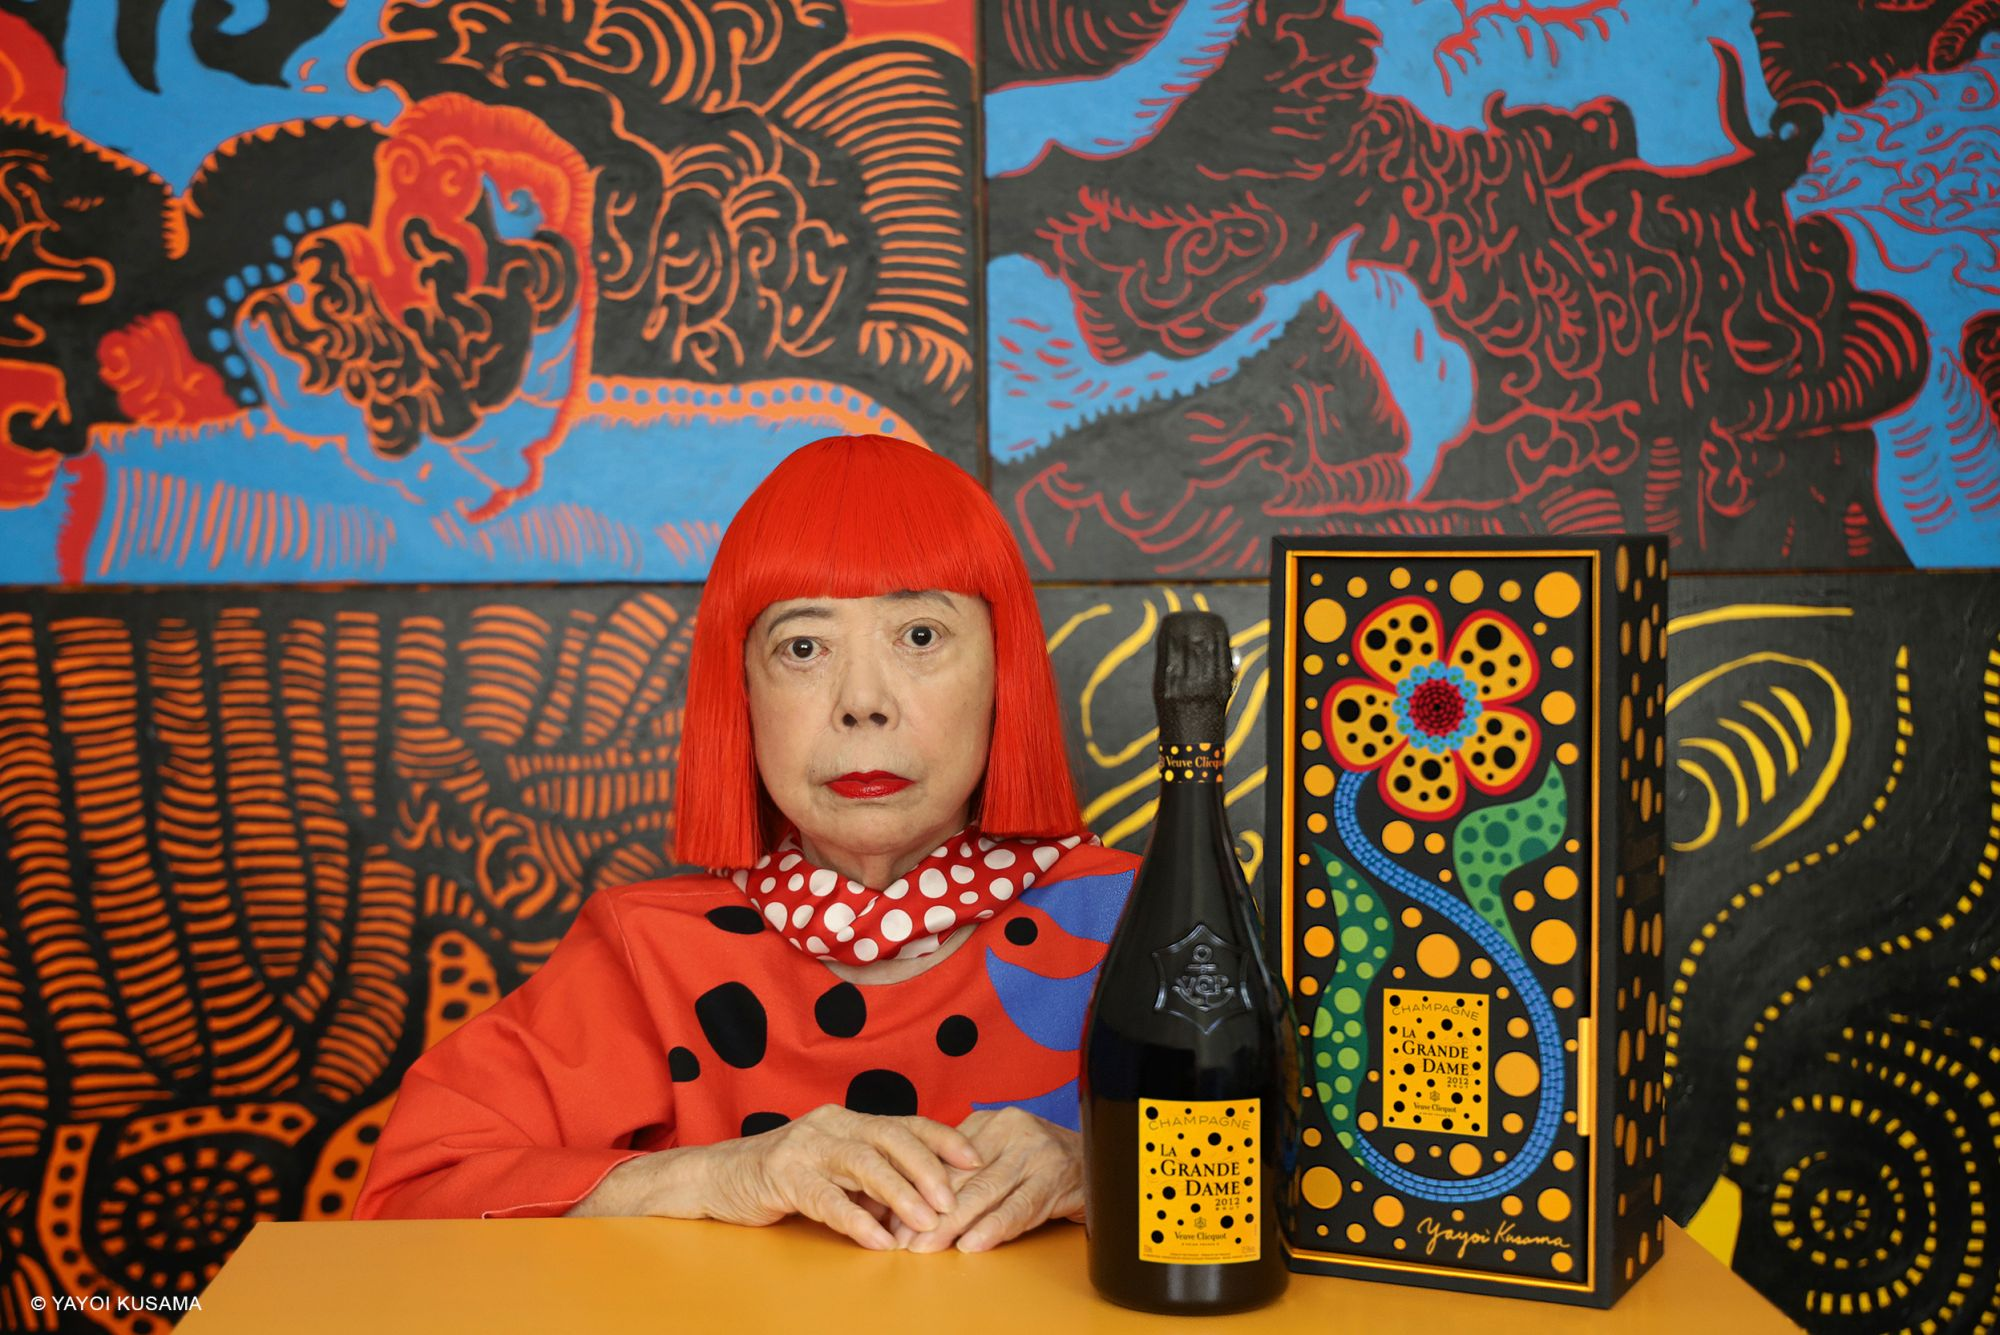 Yayoi Kusama x Veuve Clicquot Collaboration Is A Tribute To La Grande Dame Of Champagne